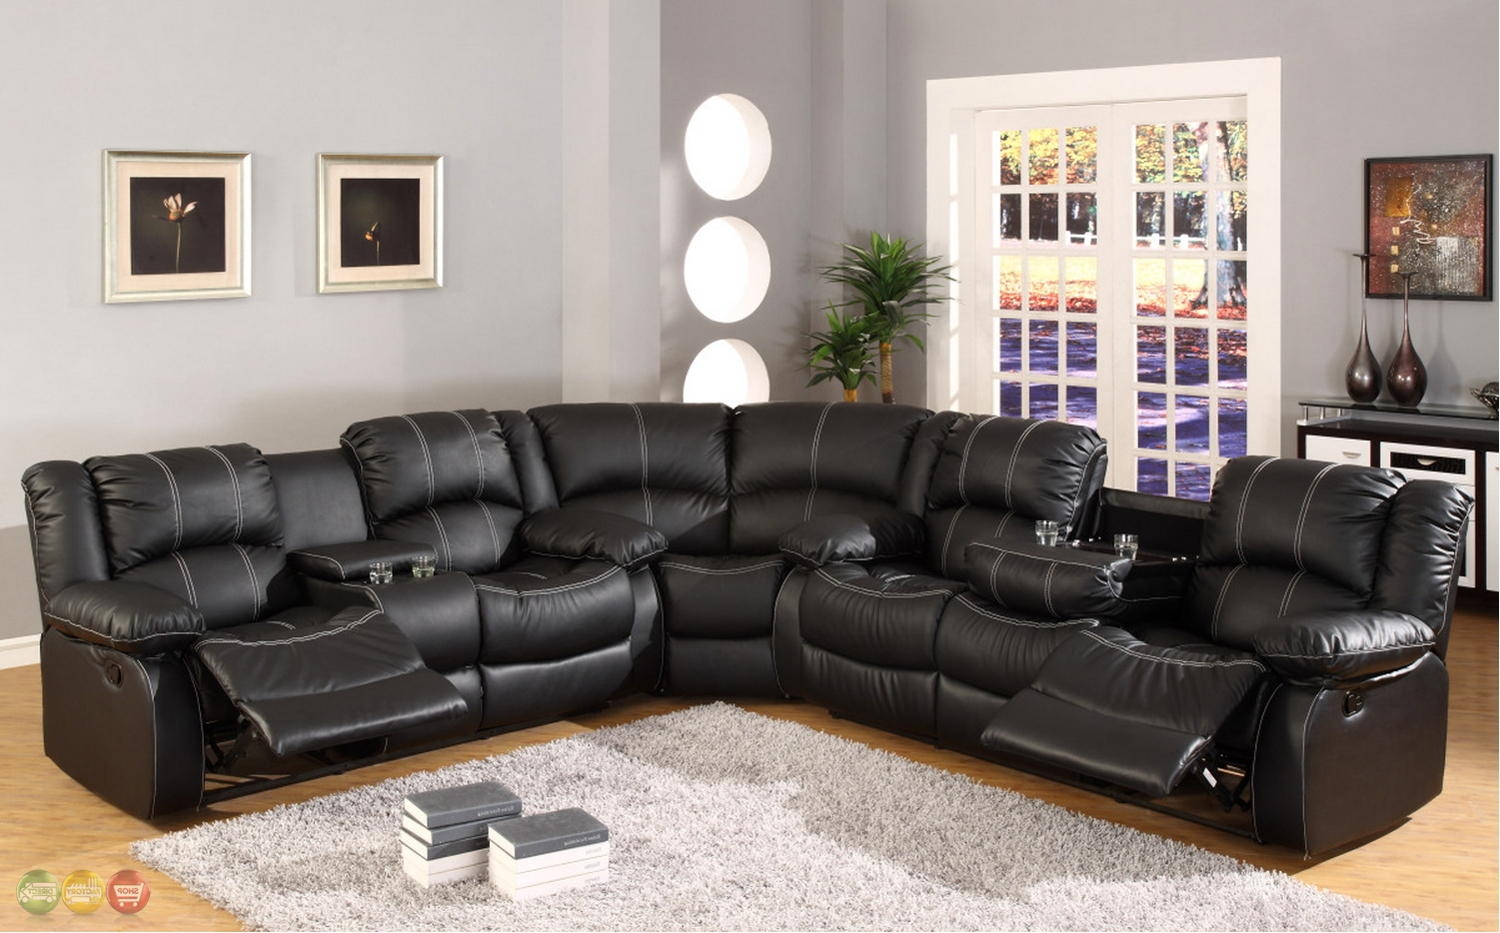 Black Faux Leather Reclining Motion Sectional Sofa W/ Storage Within Famous Sofas With Consoles (View 4 of 20)